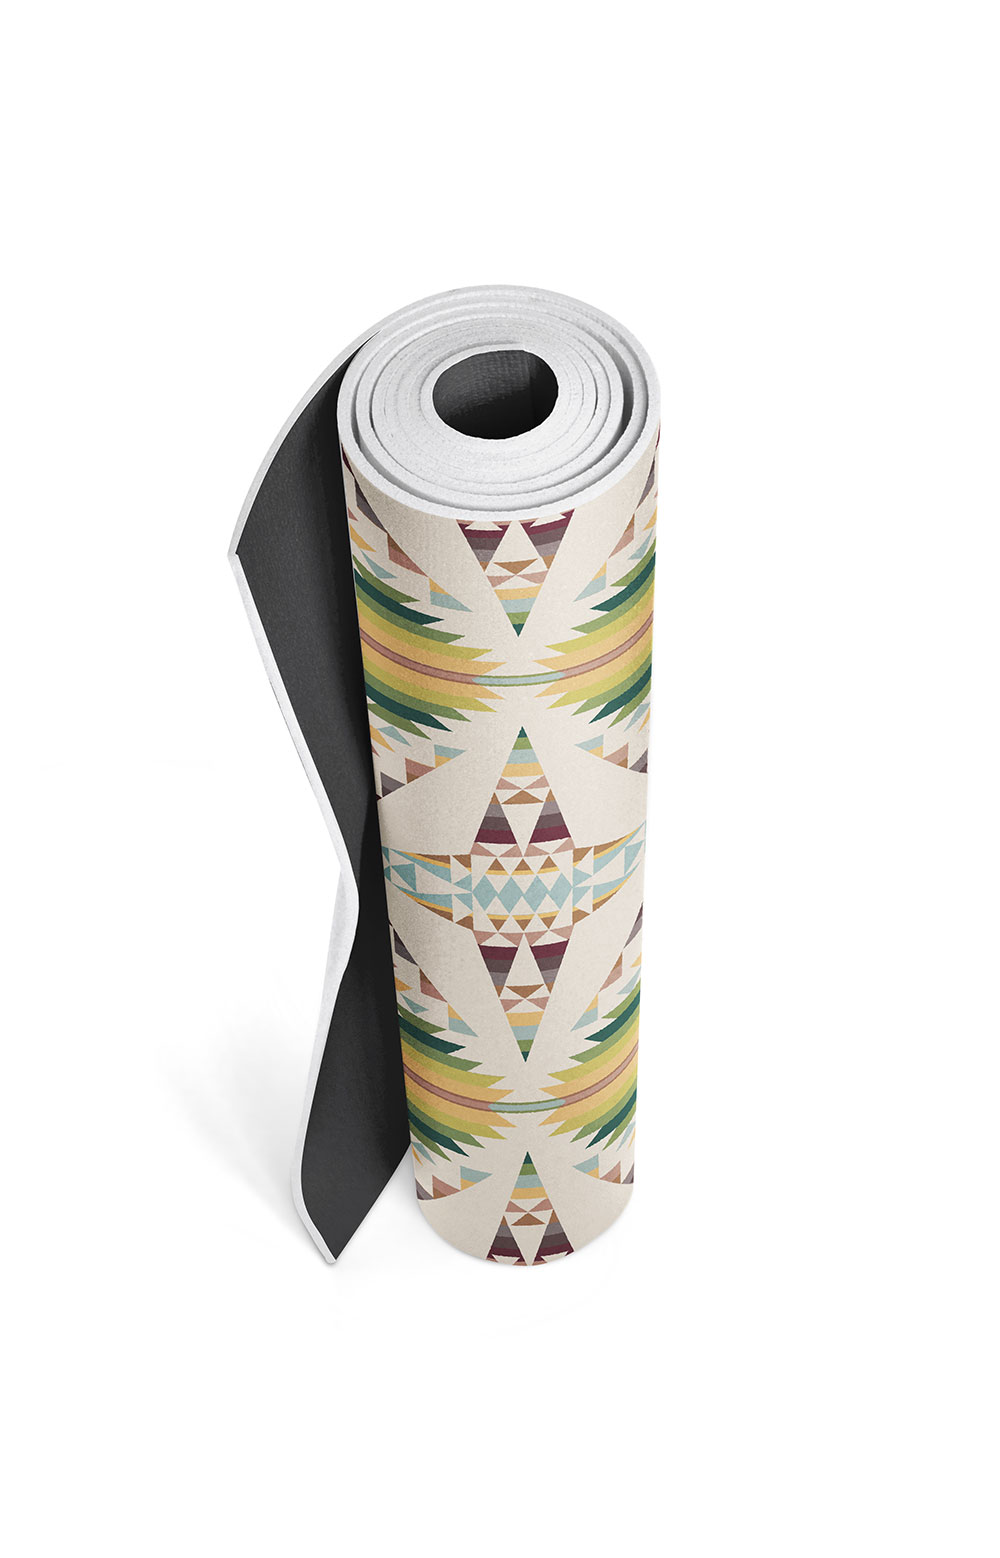 Yoga Mat - Falcon Cove Sunset 3